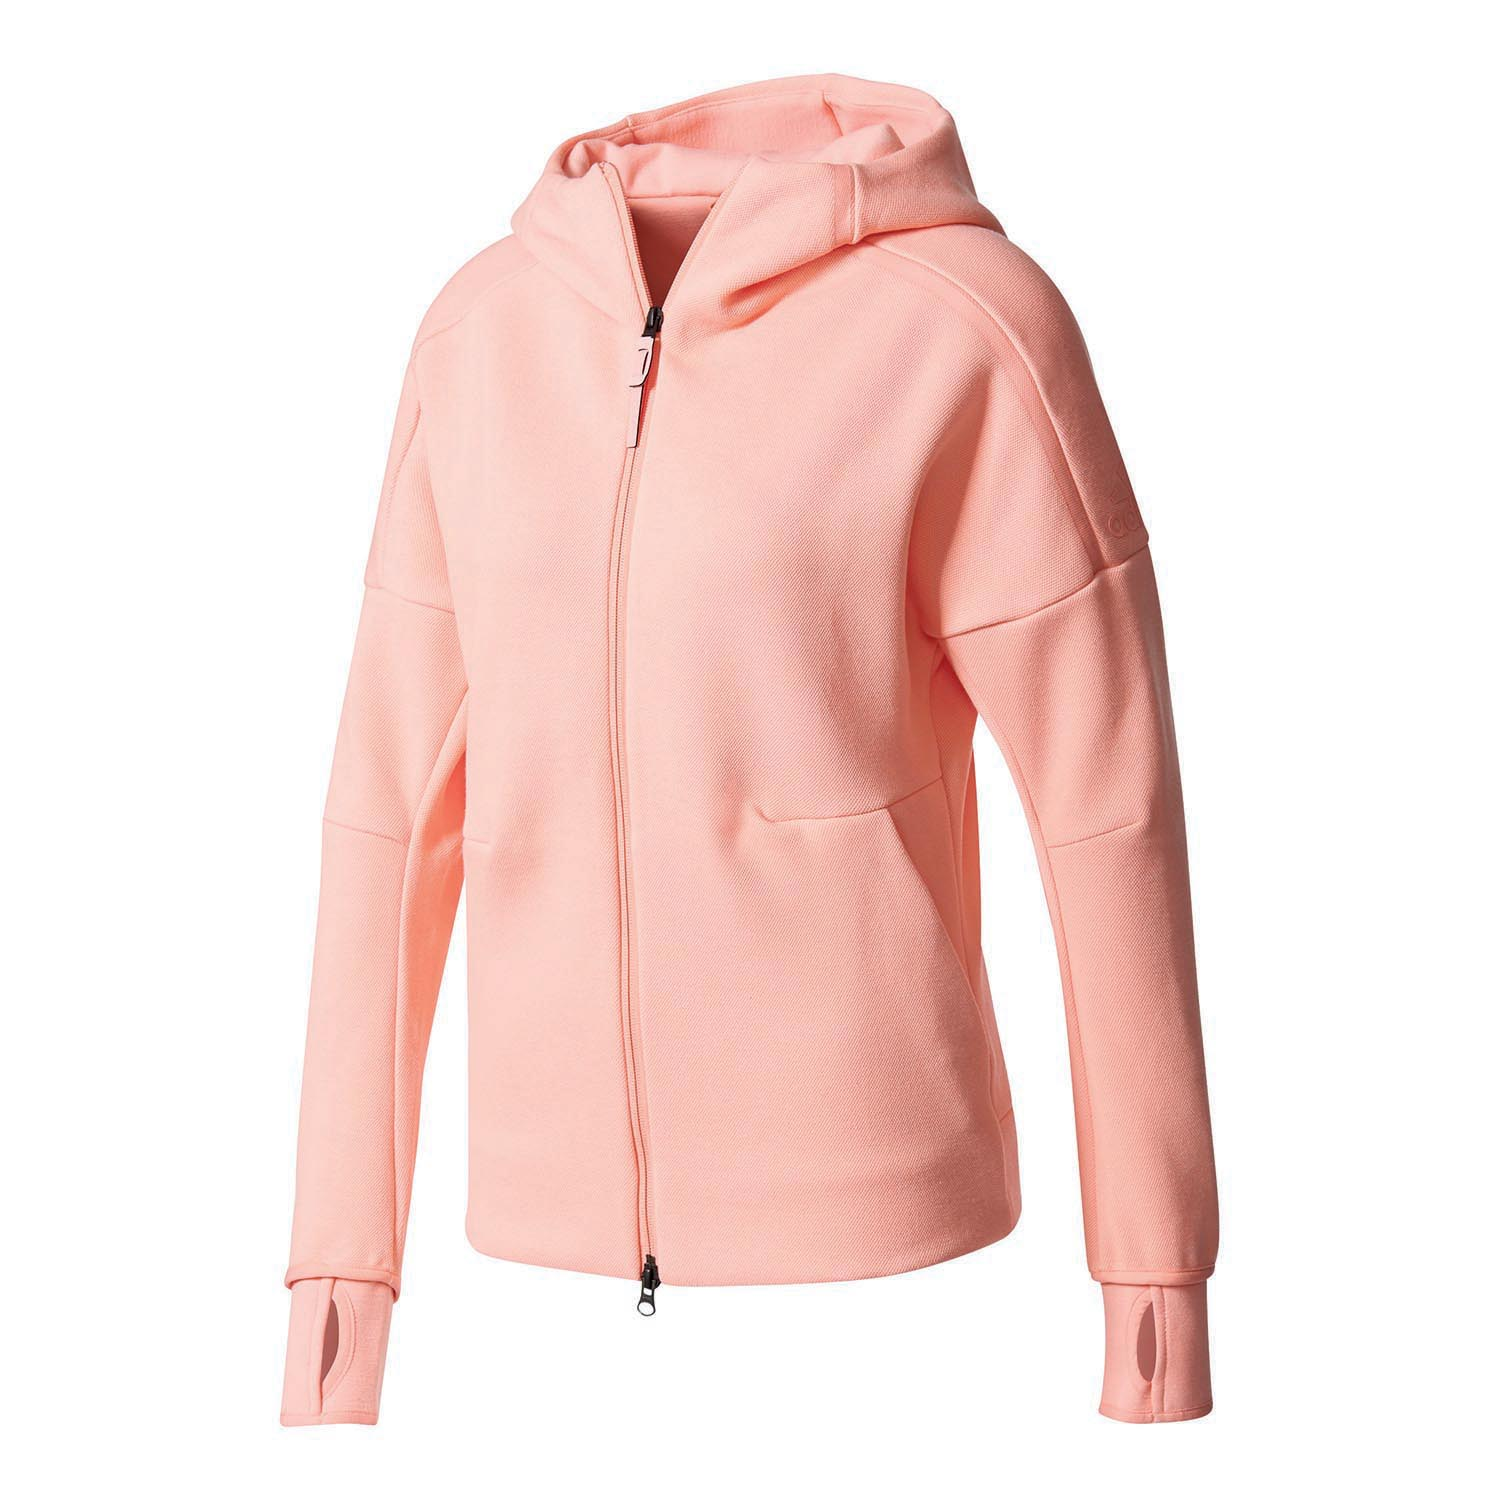 adidas zne hoody veste capuche femme vieux rose. Black Bedroom Furniture Sets. Home Design Ideas